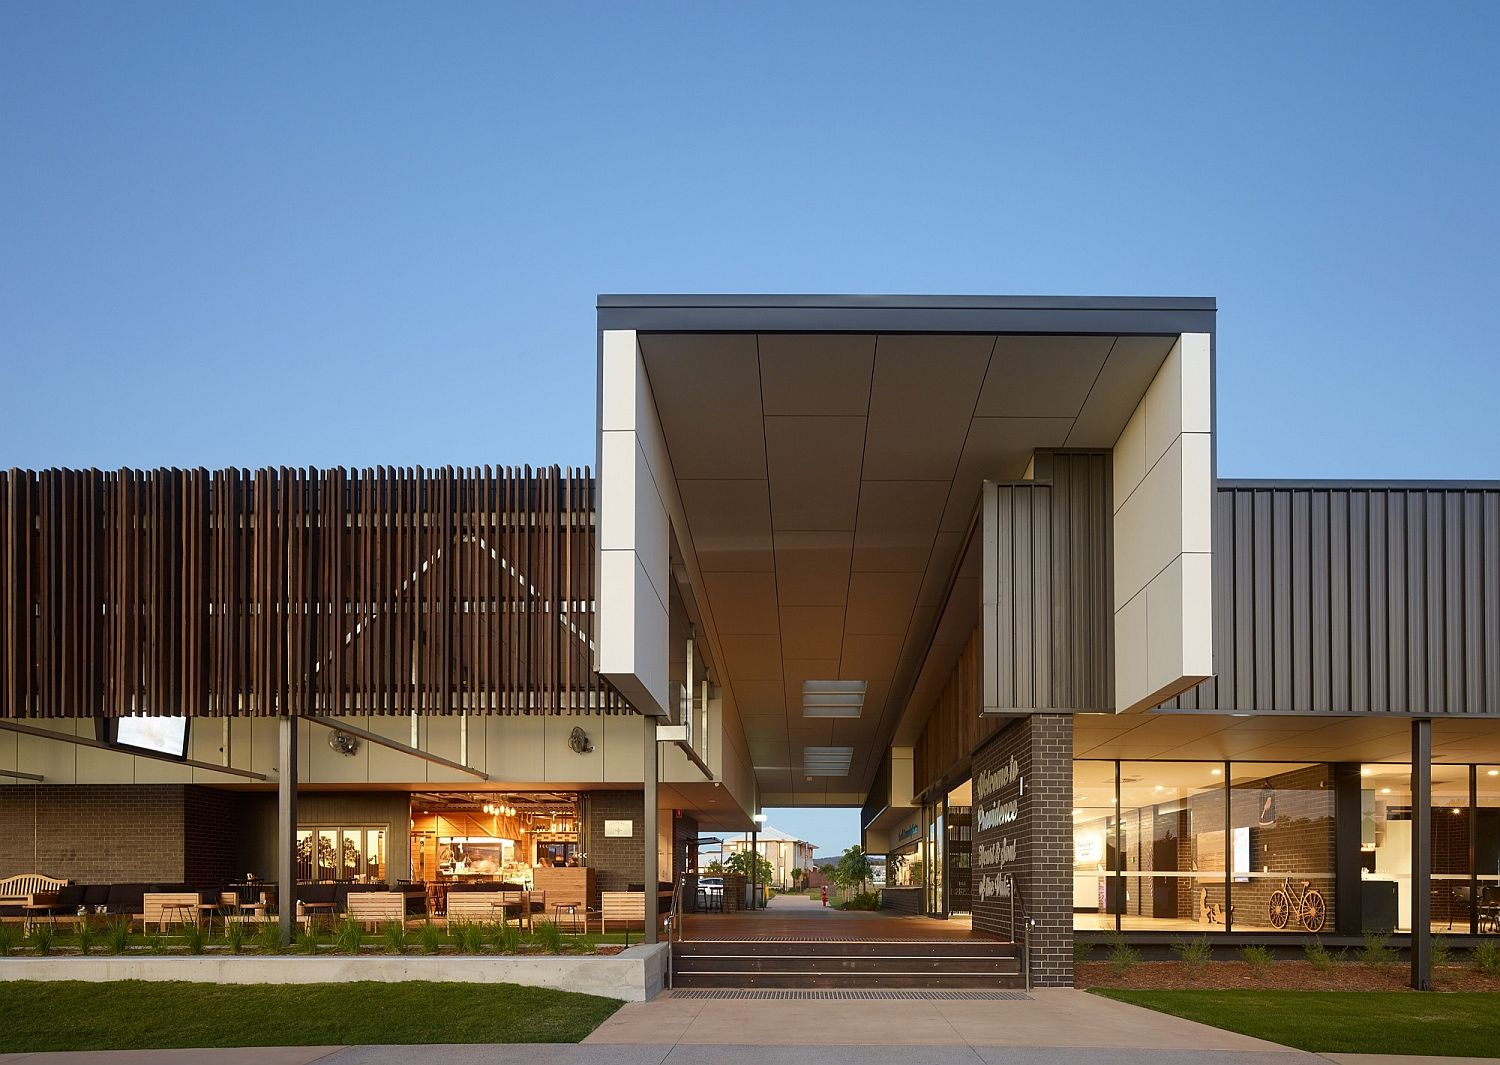 Providence Neighbourhood Centre in Queensland Australia Natural Industrial Design: Flamboyant Community Center Down Under